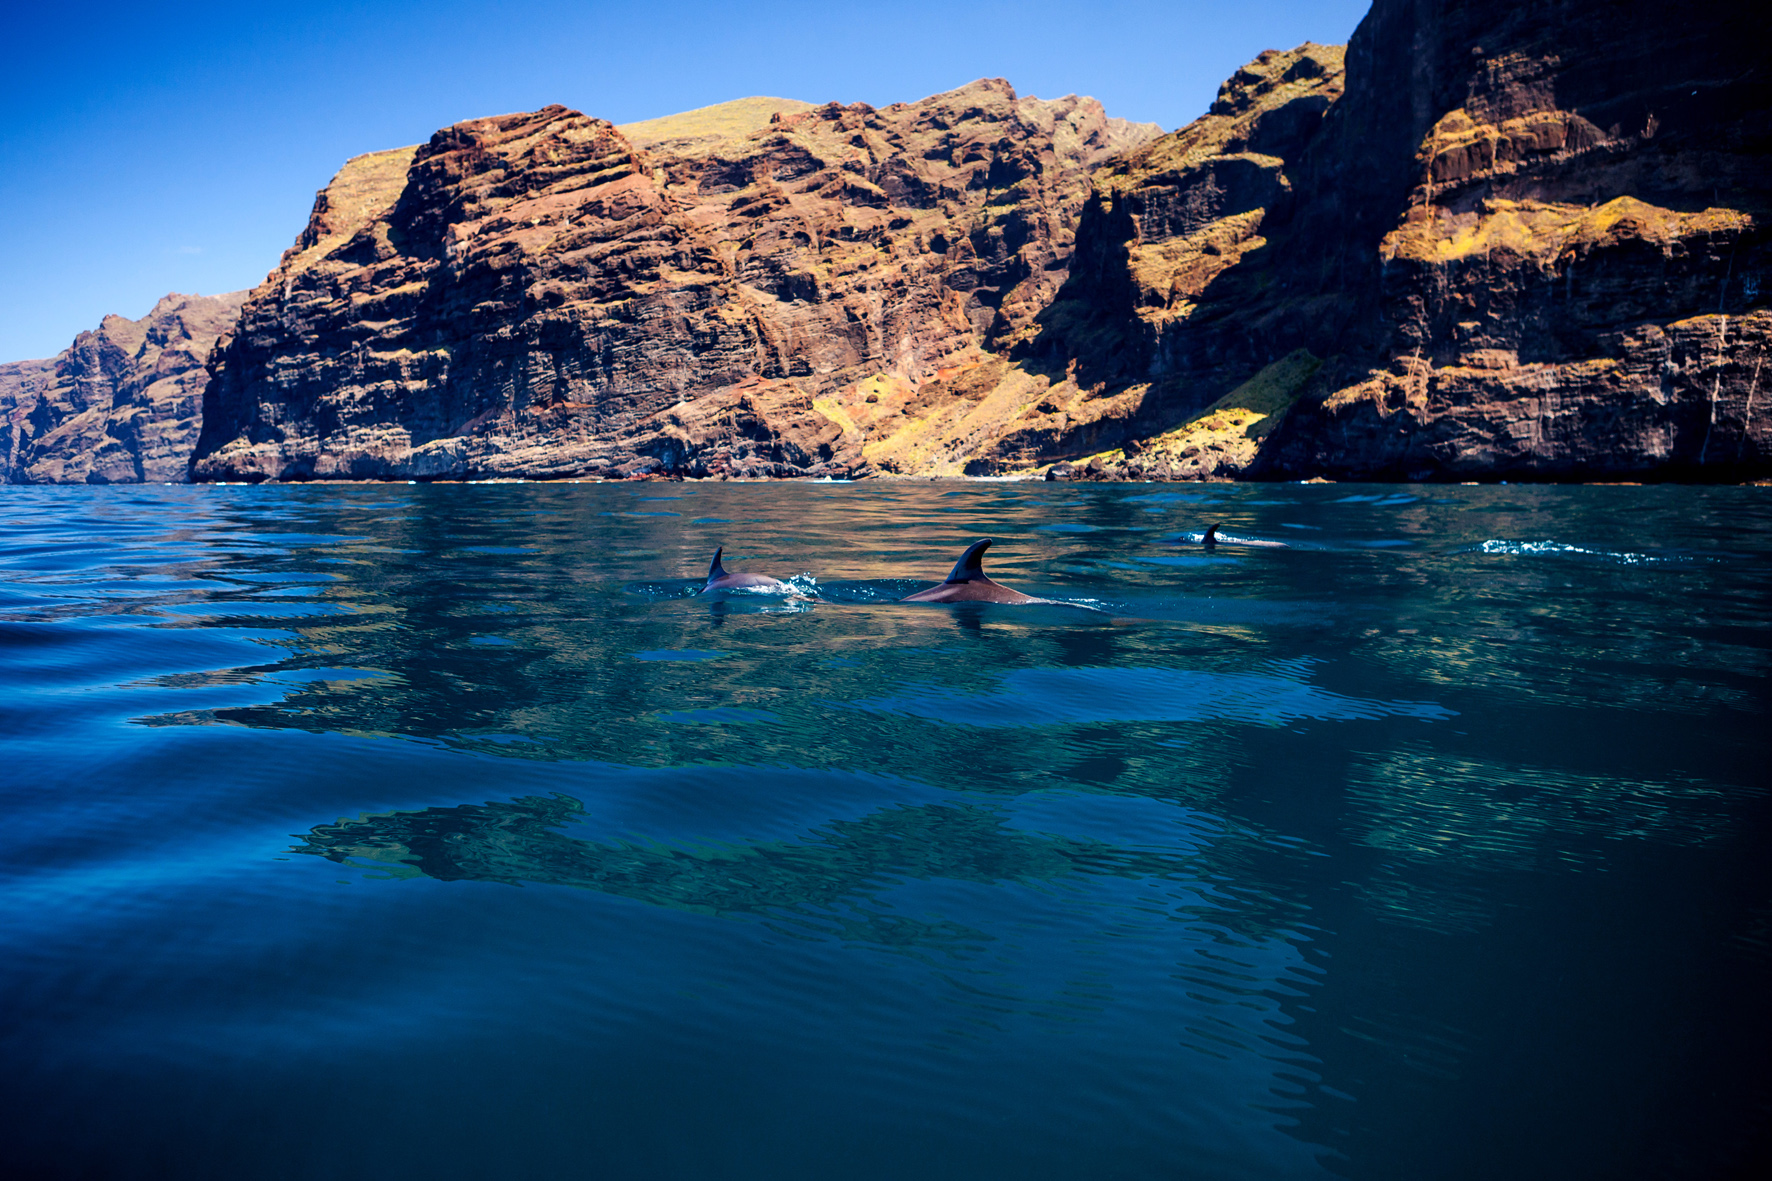 Photo: White Tenerife. Dolphins in Los Gigantes. Tenerife, Canary Islands, Spain.